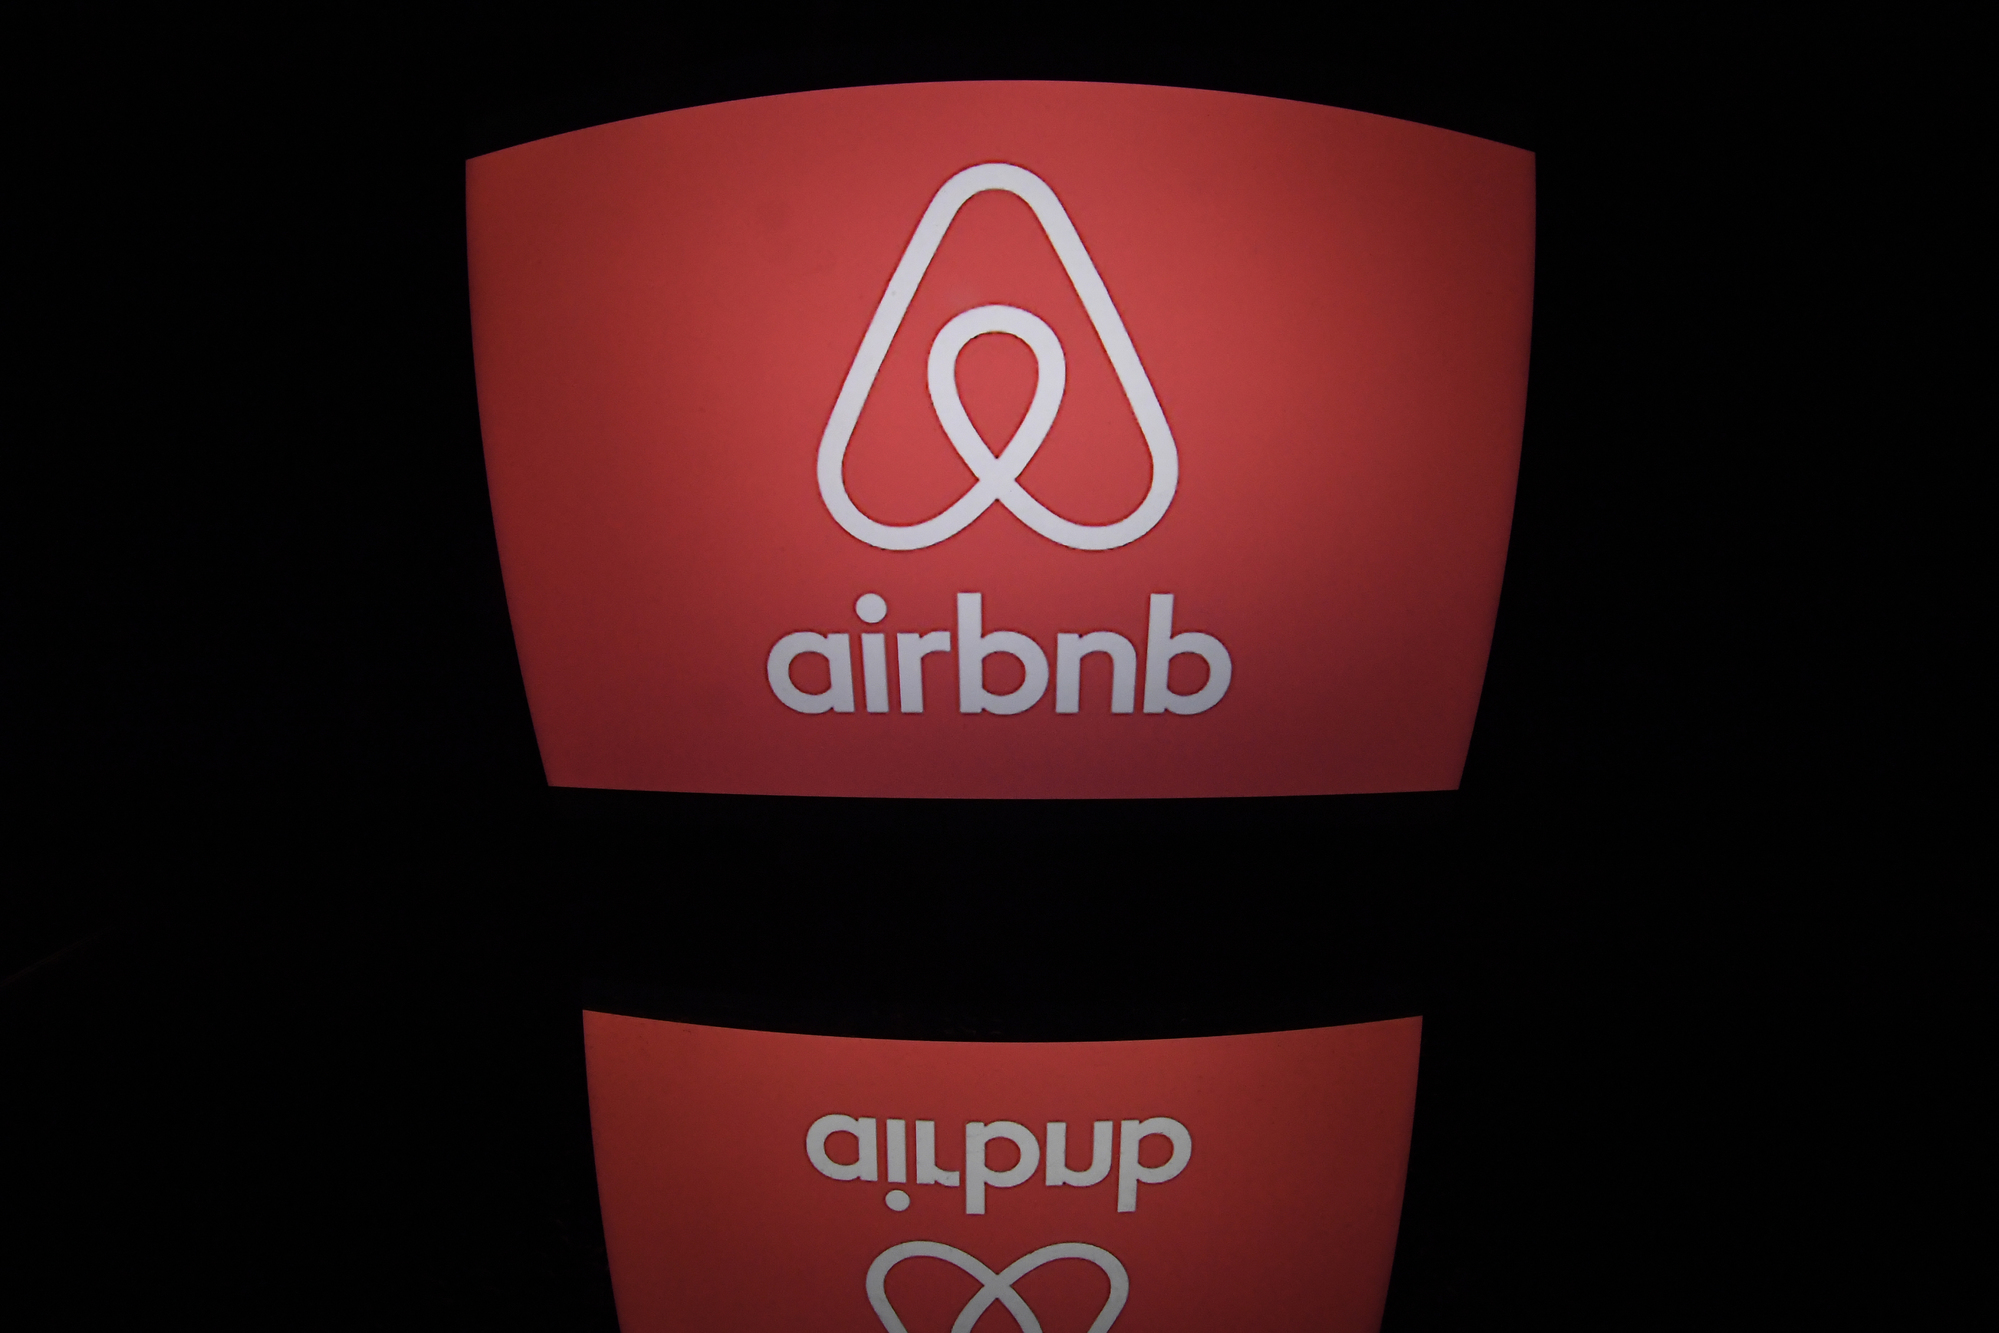 AirBnb hardening its rules to prevent the parties wild